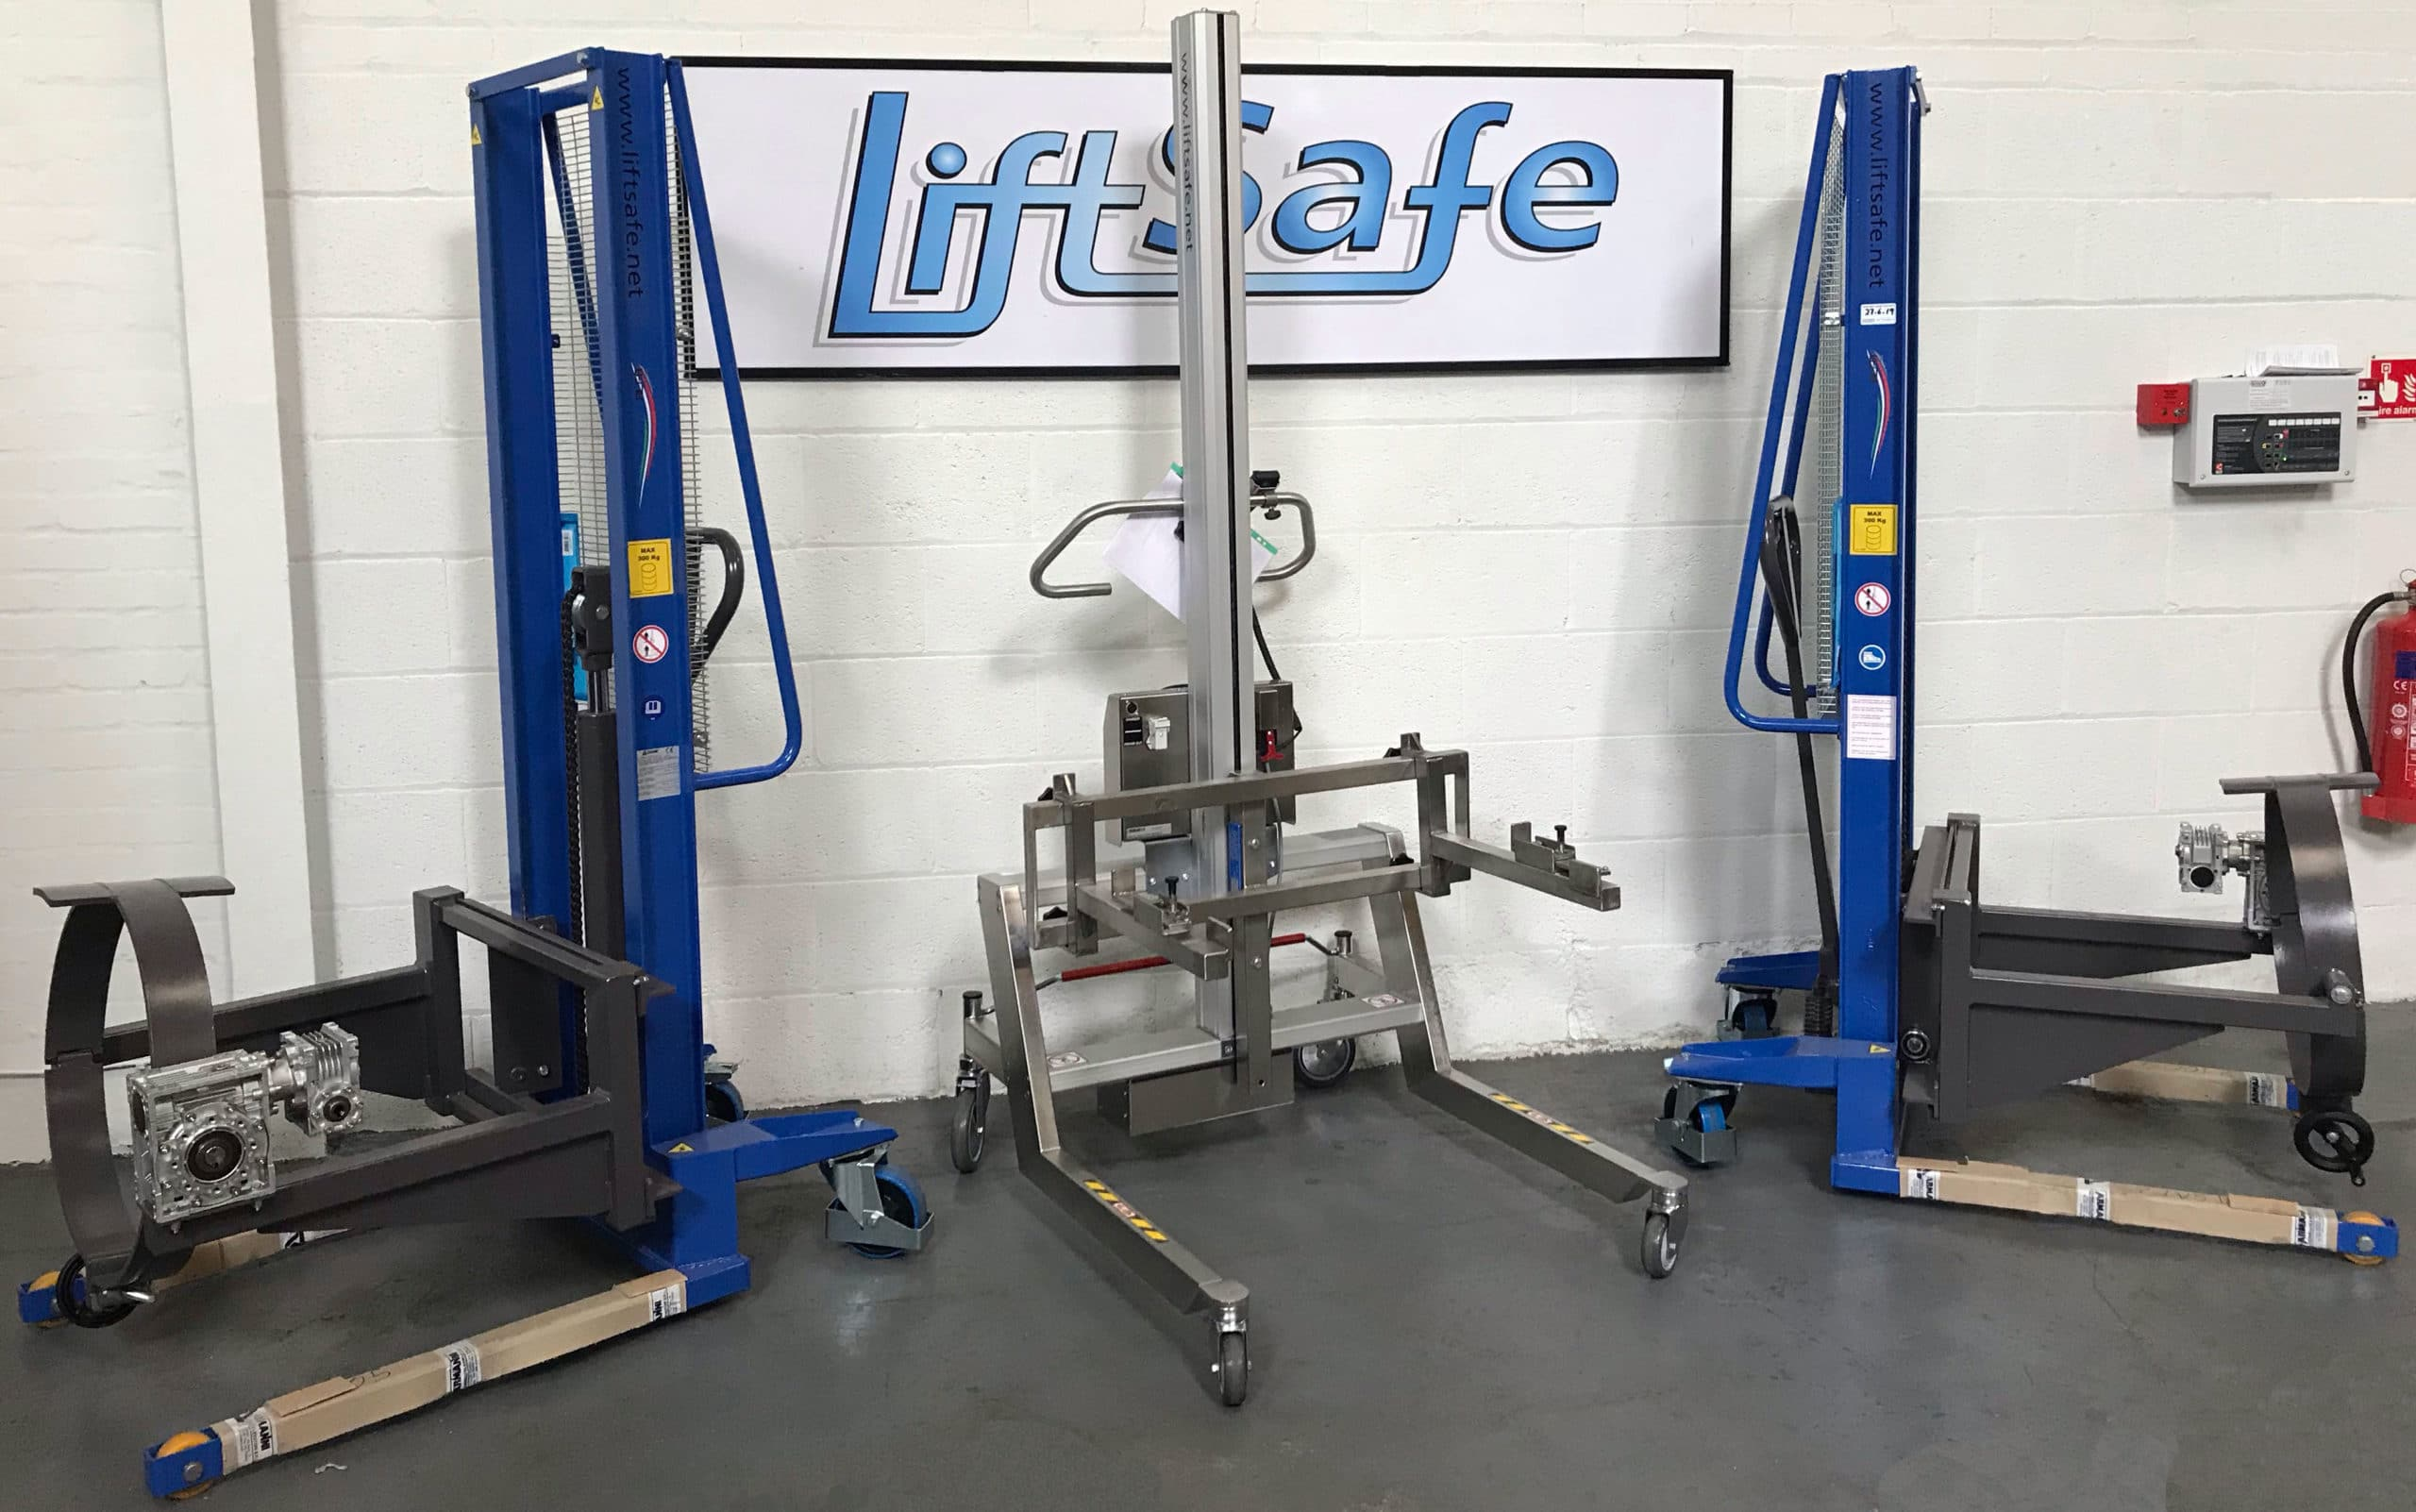 Lift Safe Supplies A World Leading Fragrance Manufacturer With Custom Lifting Equipment